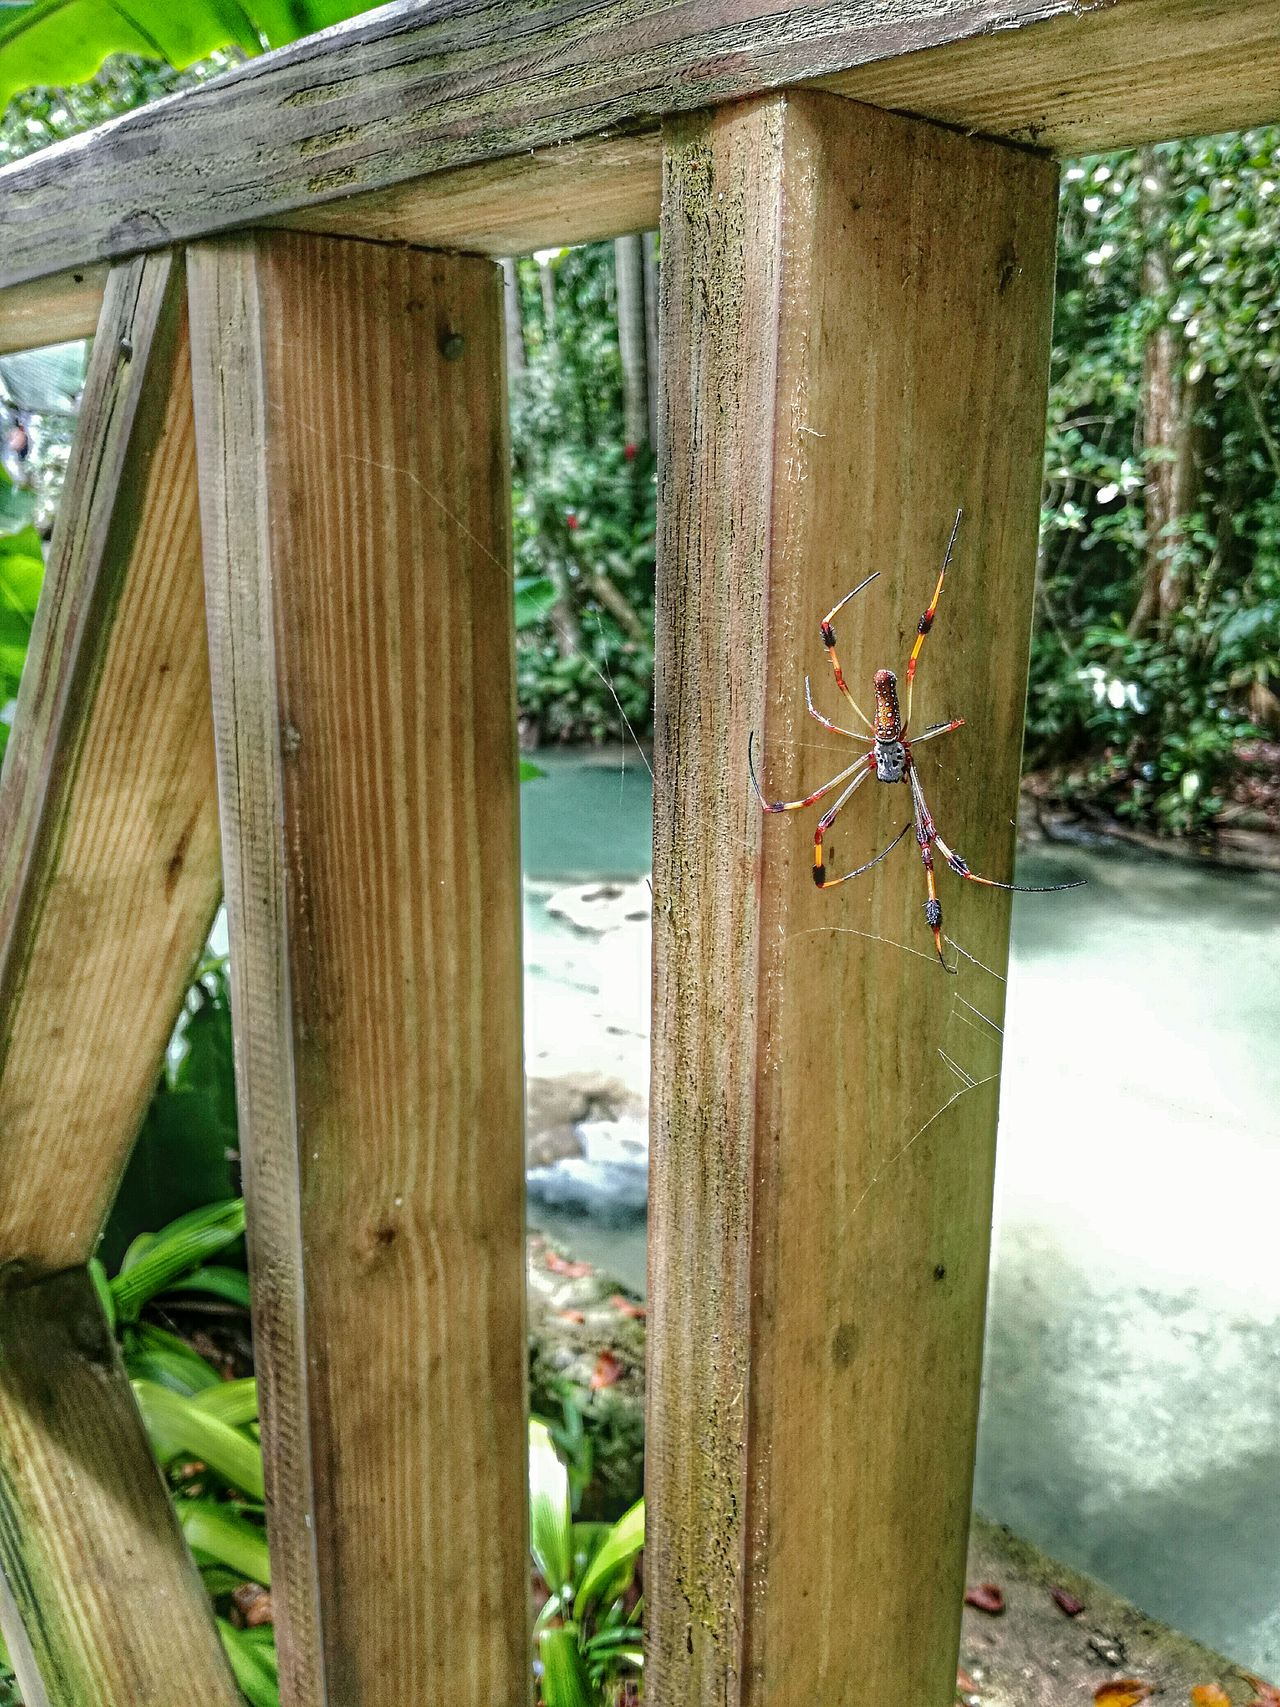 My Year My View Wood - Material Day Outdoors No People Water Nature Beauty In Nature Spider Wild